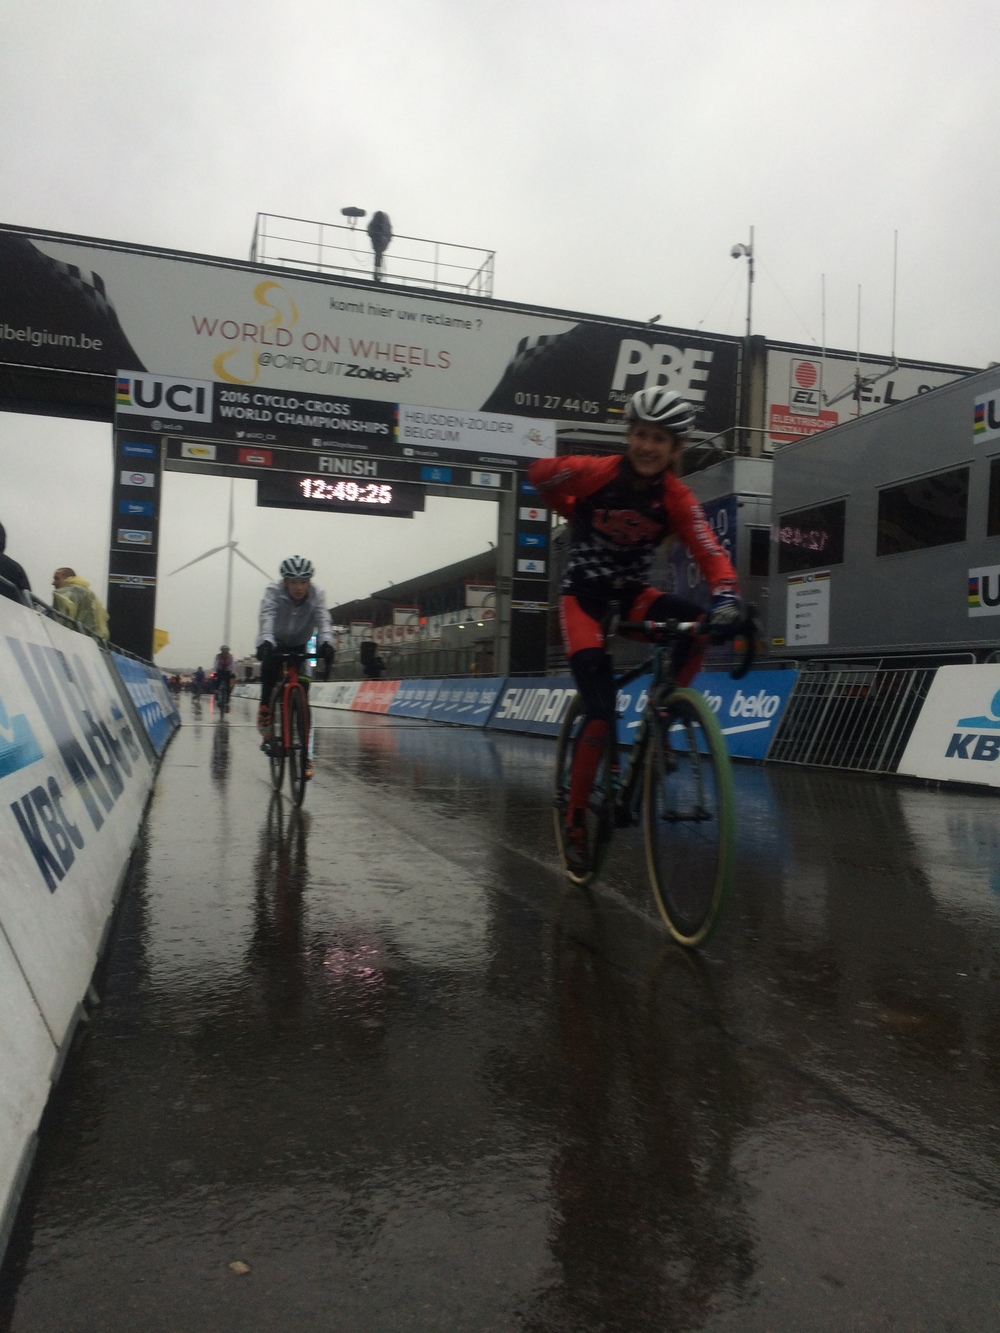 Pouring Rain in the finish line